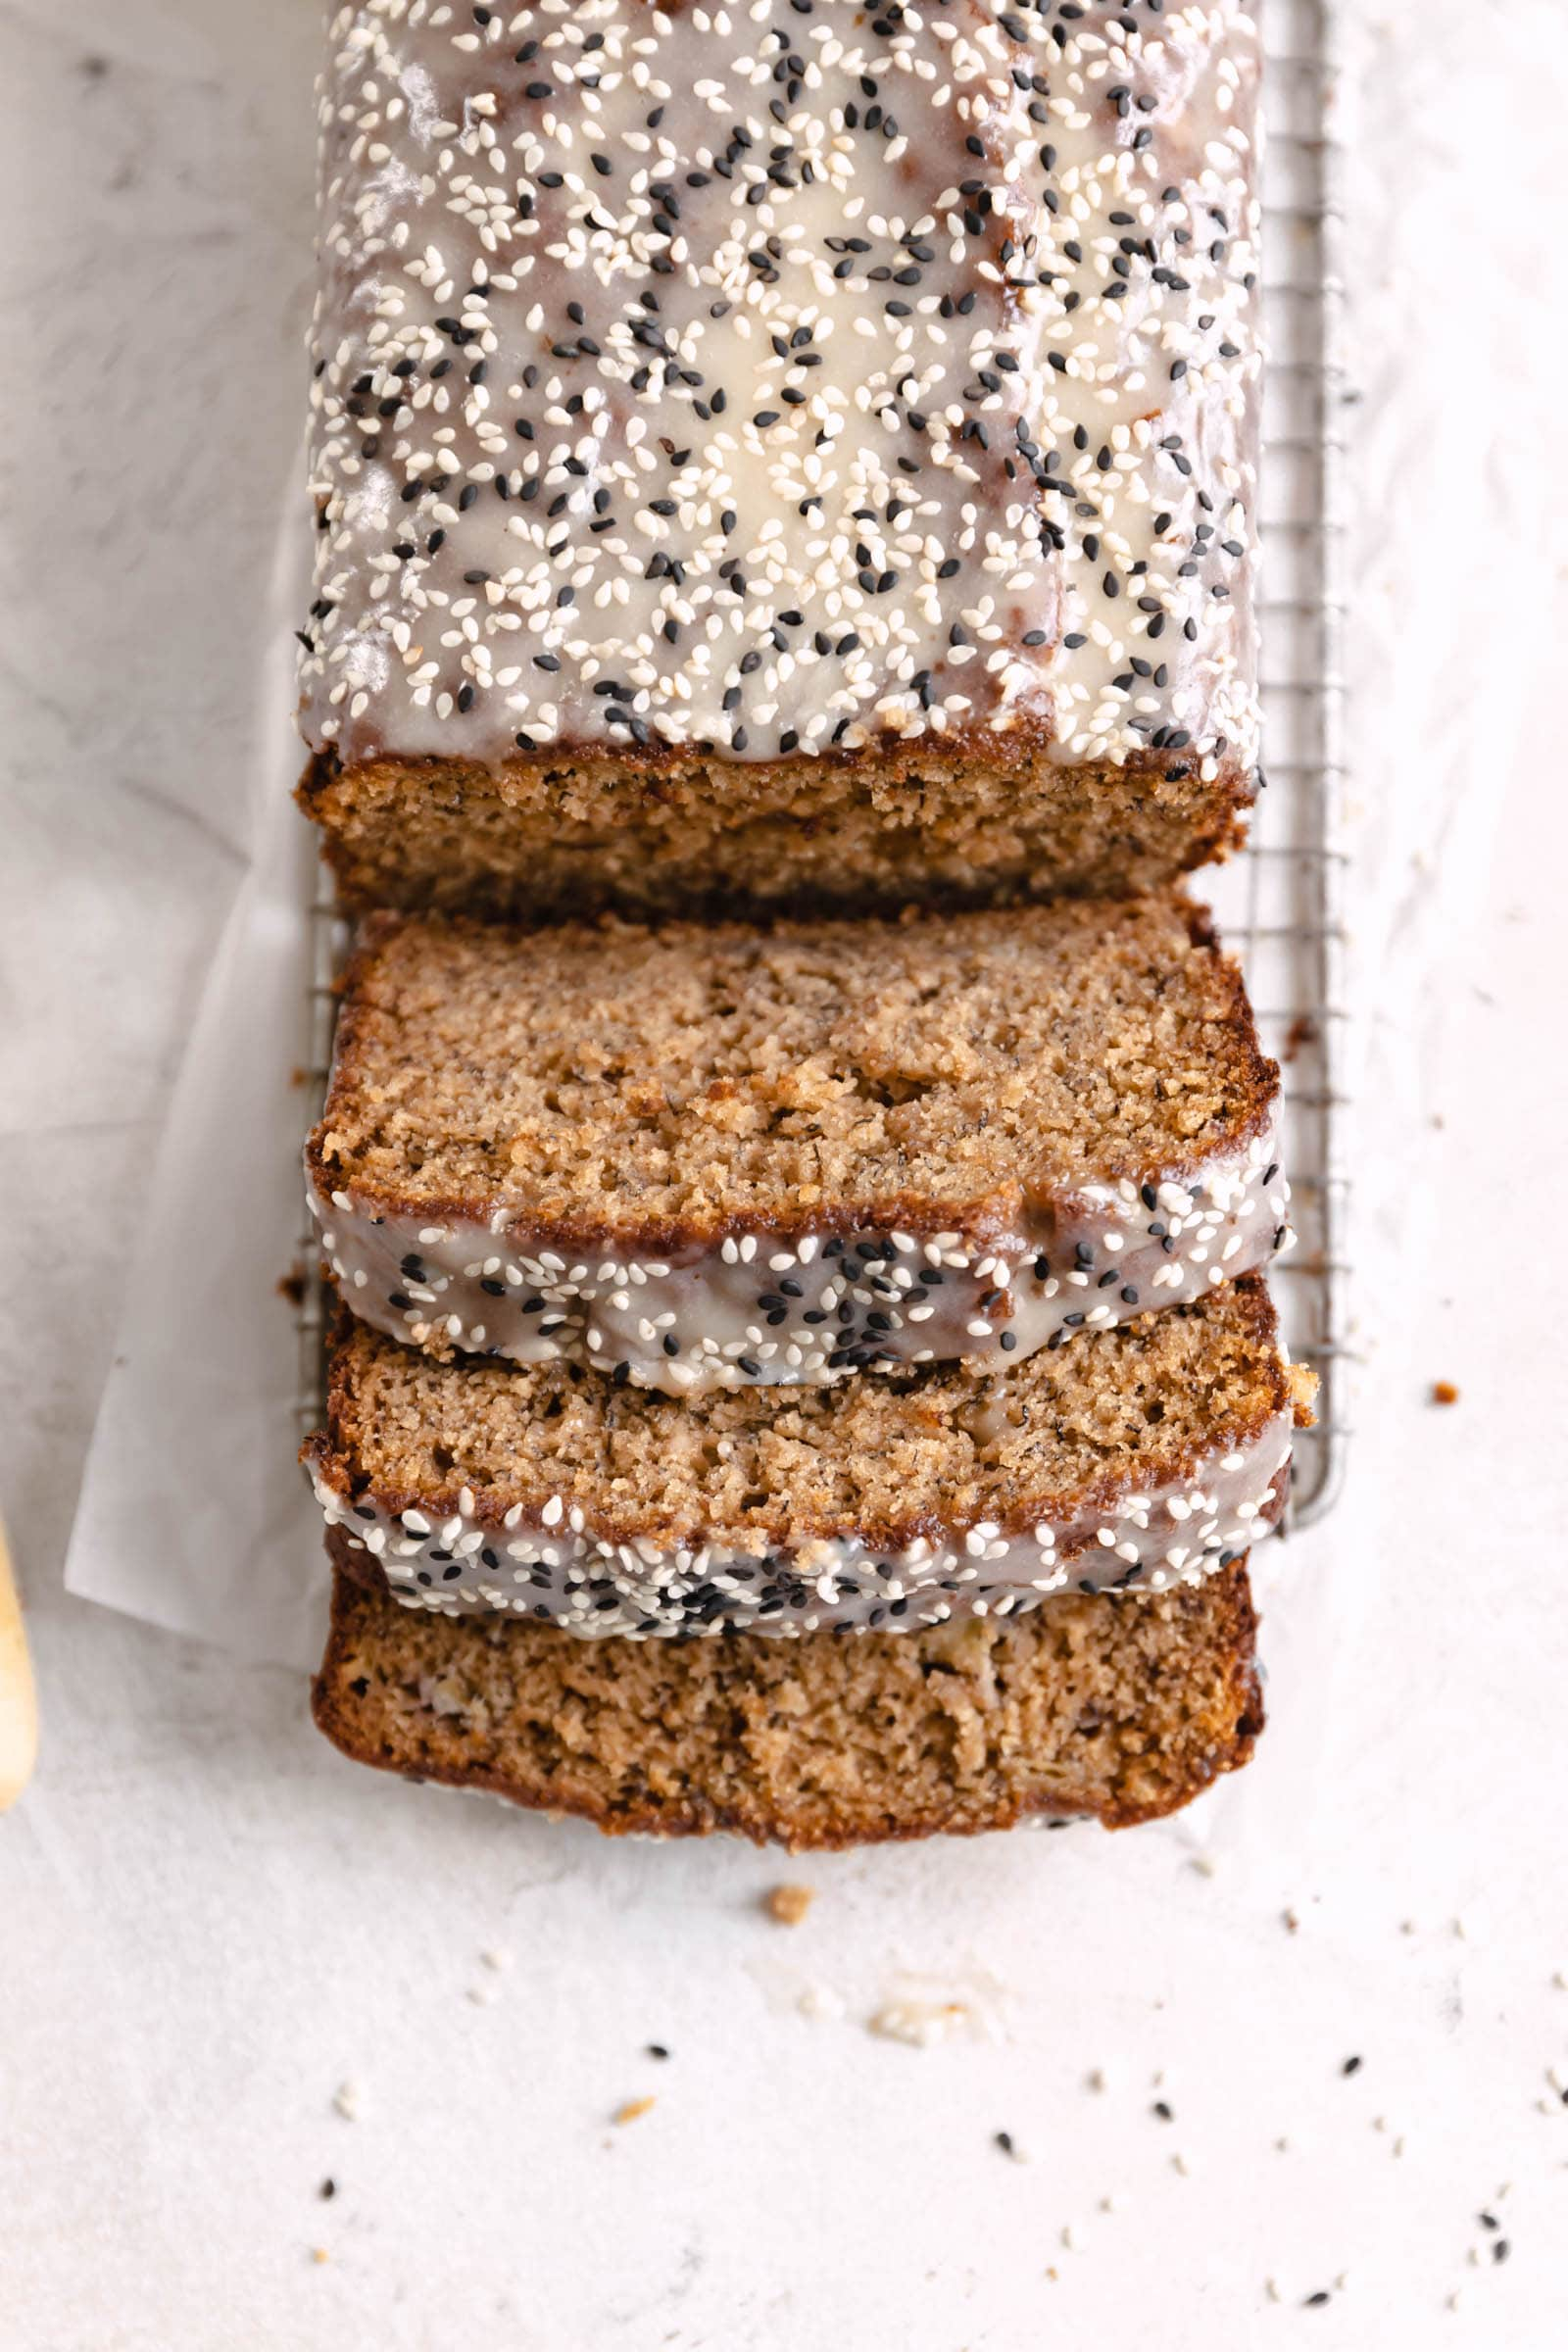 tahini banana bread topped with tahini glaze and sesame seeds